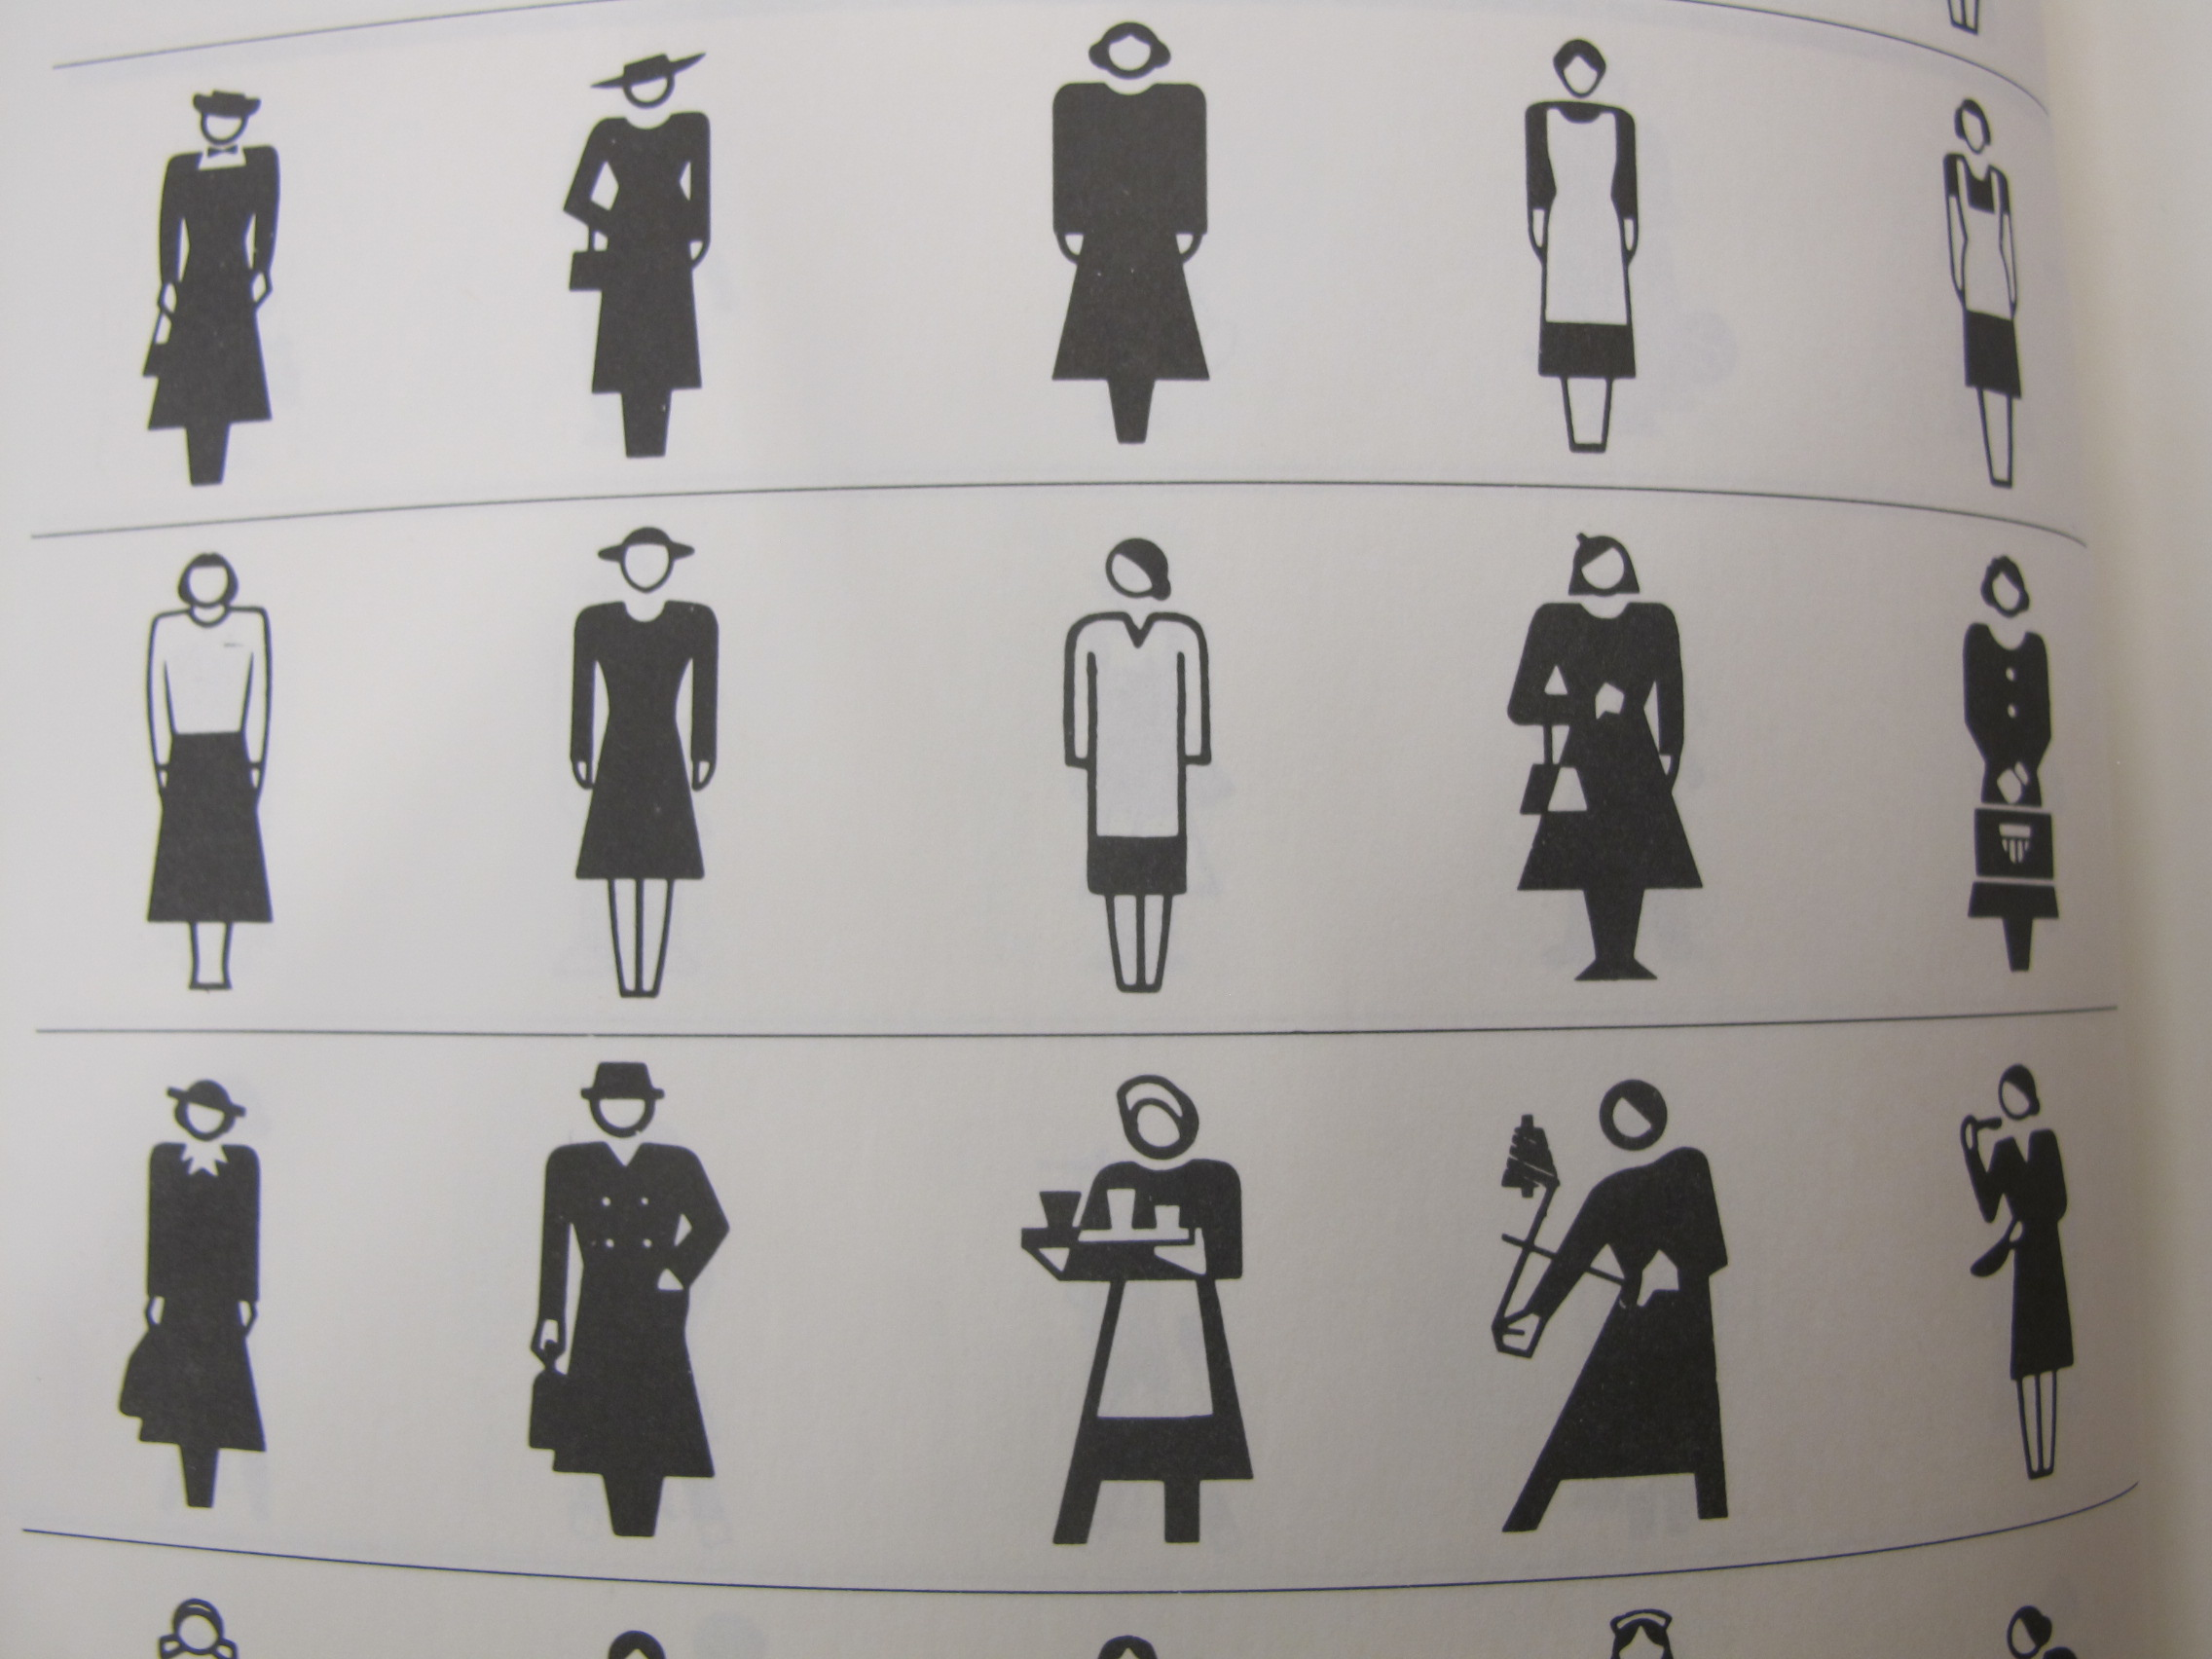 Symbols living chapters what kinds of images have been used in the past to represent women do i separately self identify as being a woman being a woman with a certain kind of biocorpaavc